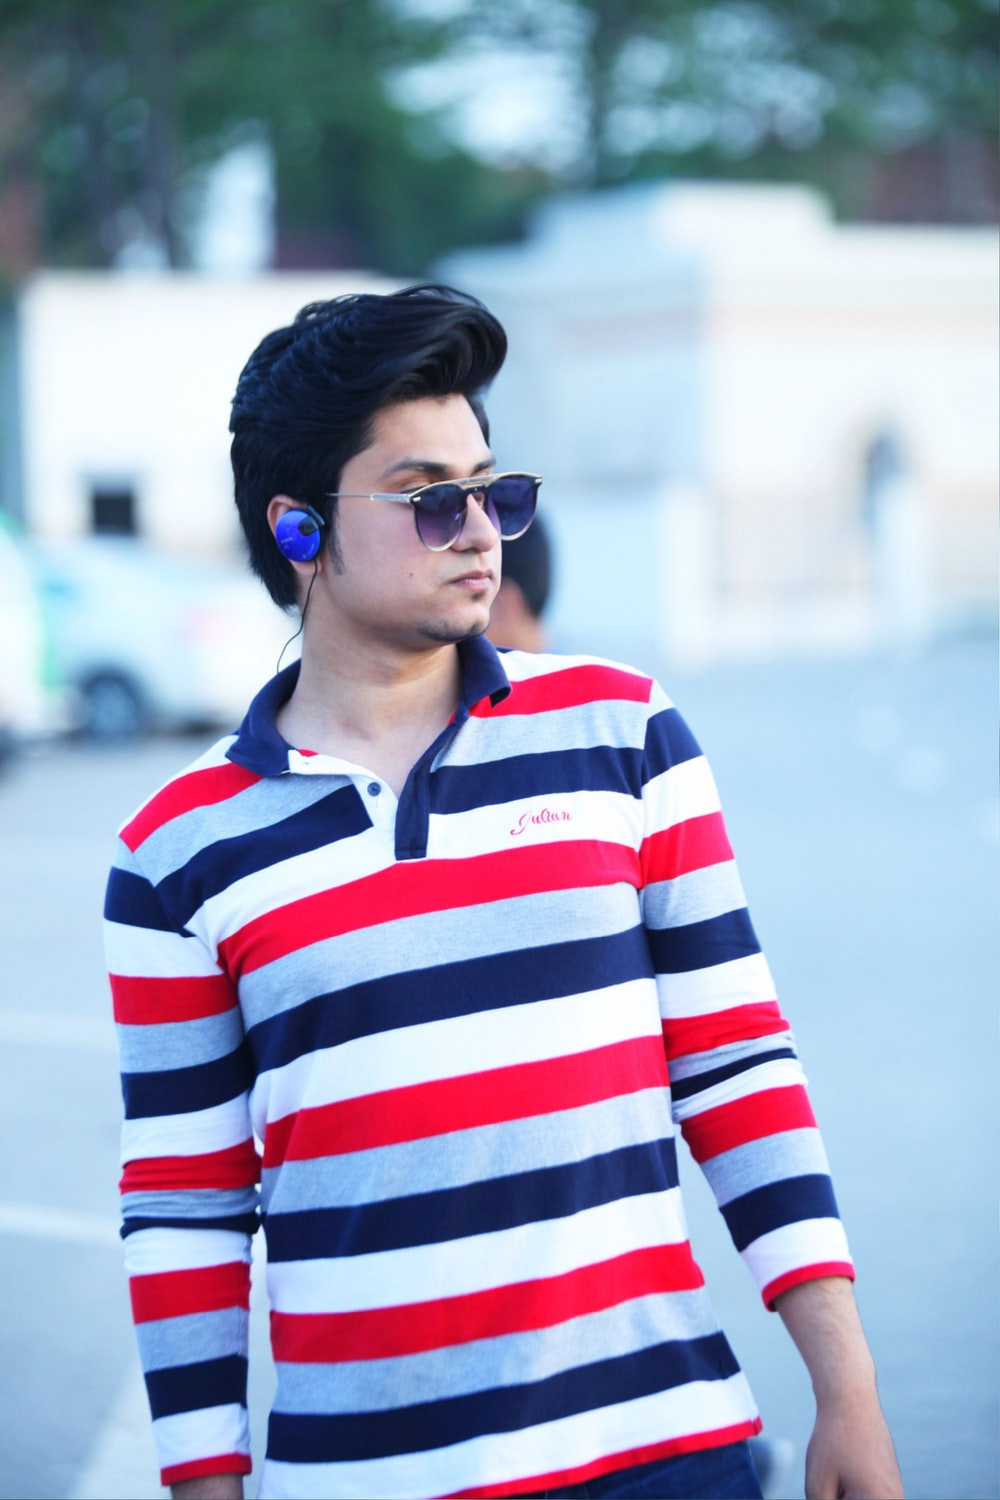 man wearing red and white striped shirt